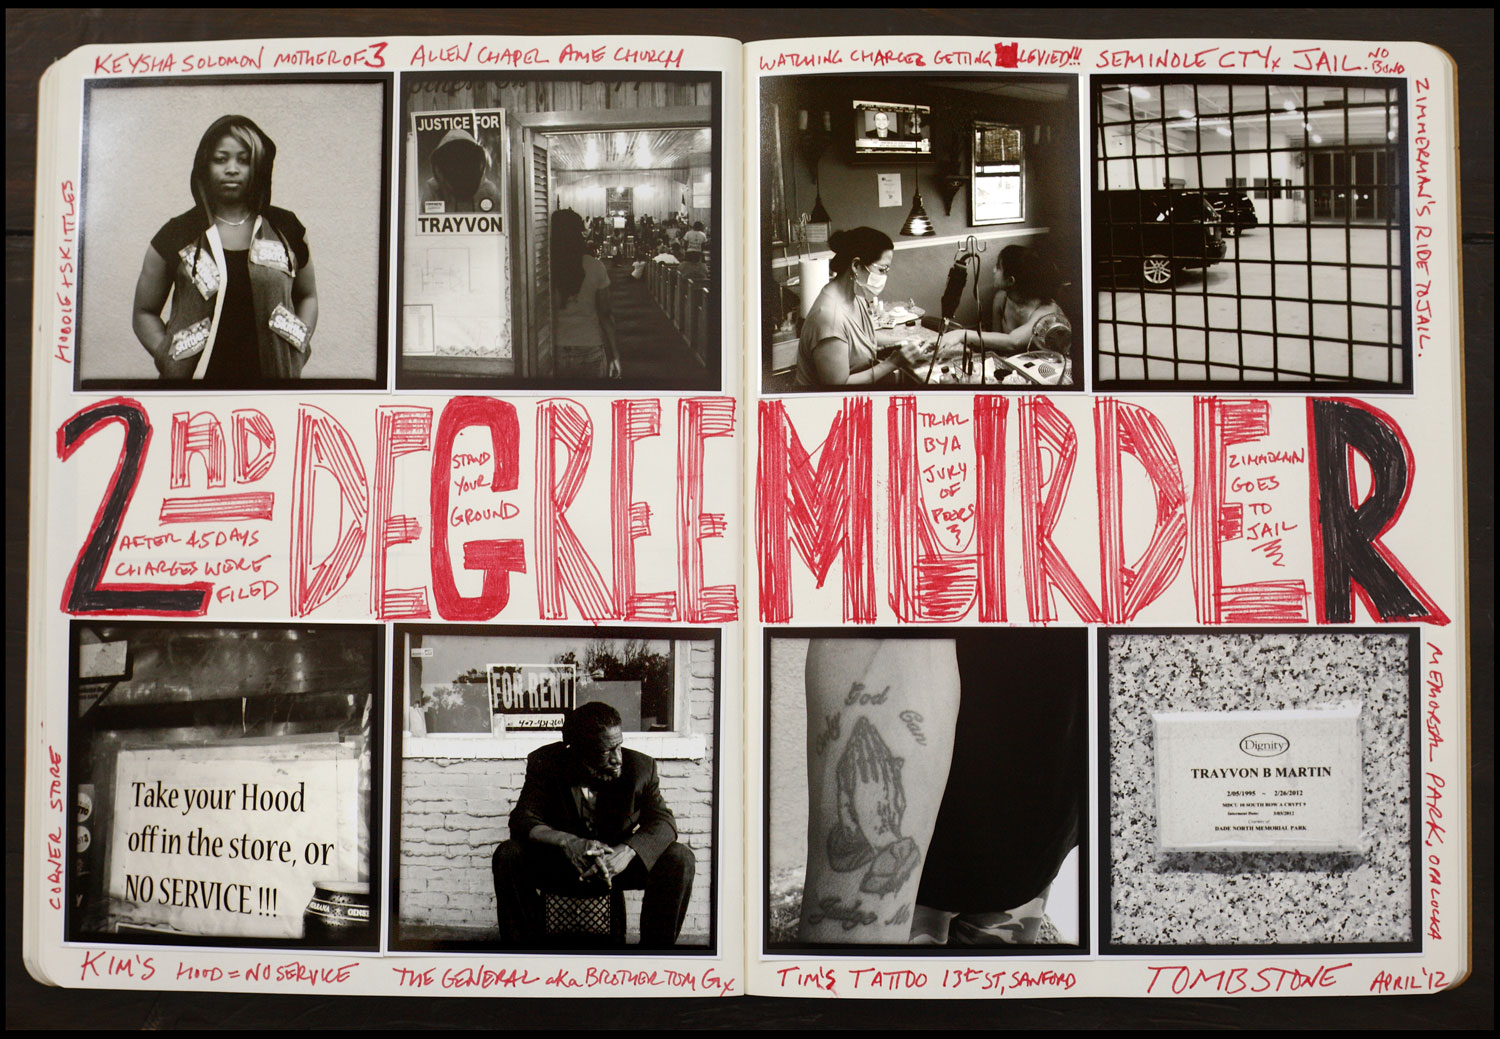 Another spread from Kaufman's journals. AK FOTO Journal #4